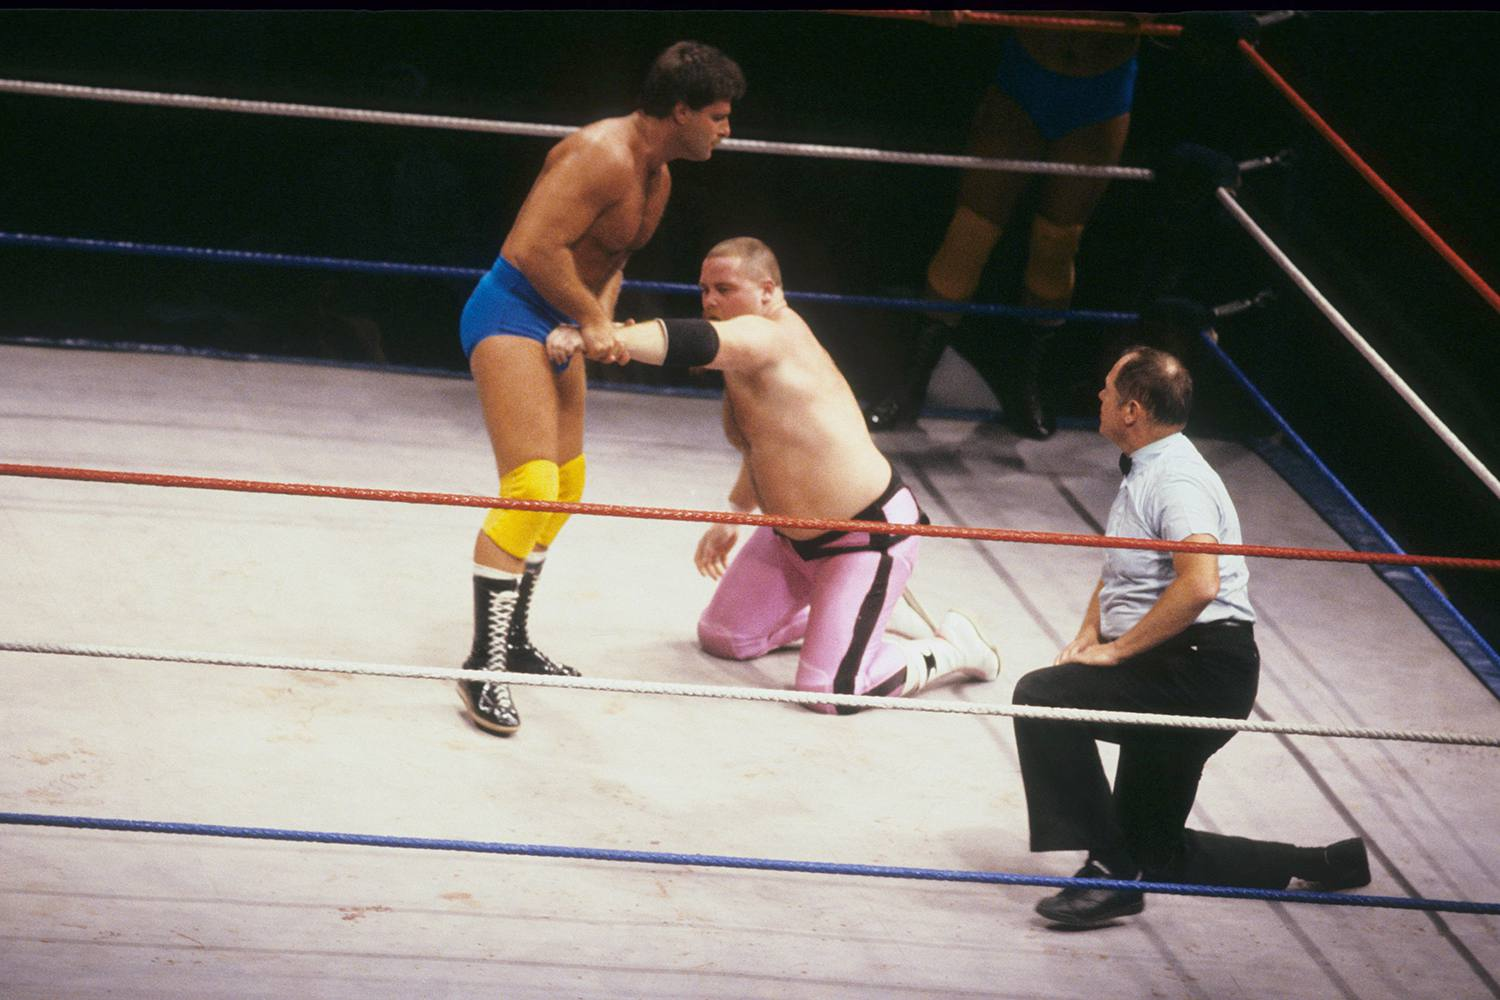 WWF Wrestler Raymond Rougeau puts the hold on Jim 'The Anvil' Neidhart during a WWF match on July 17 1987 at Nassau Coliseum in New York, New York.